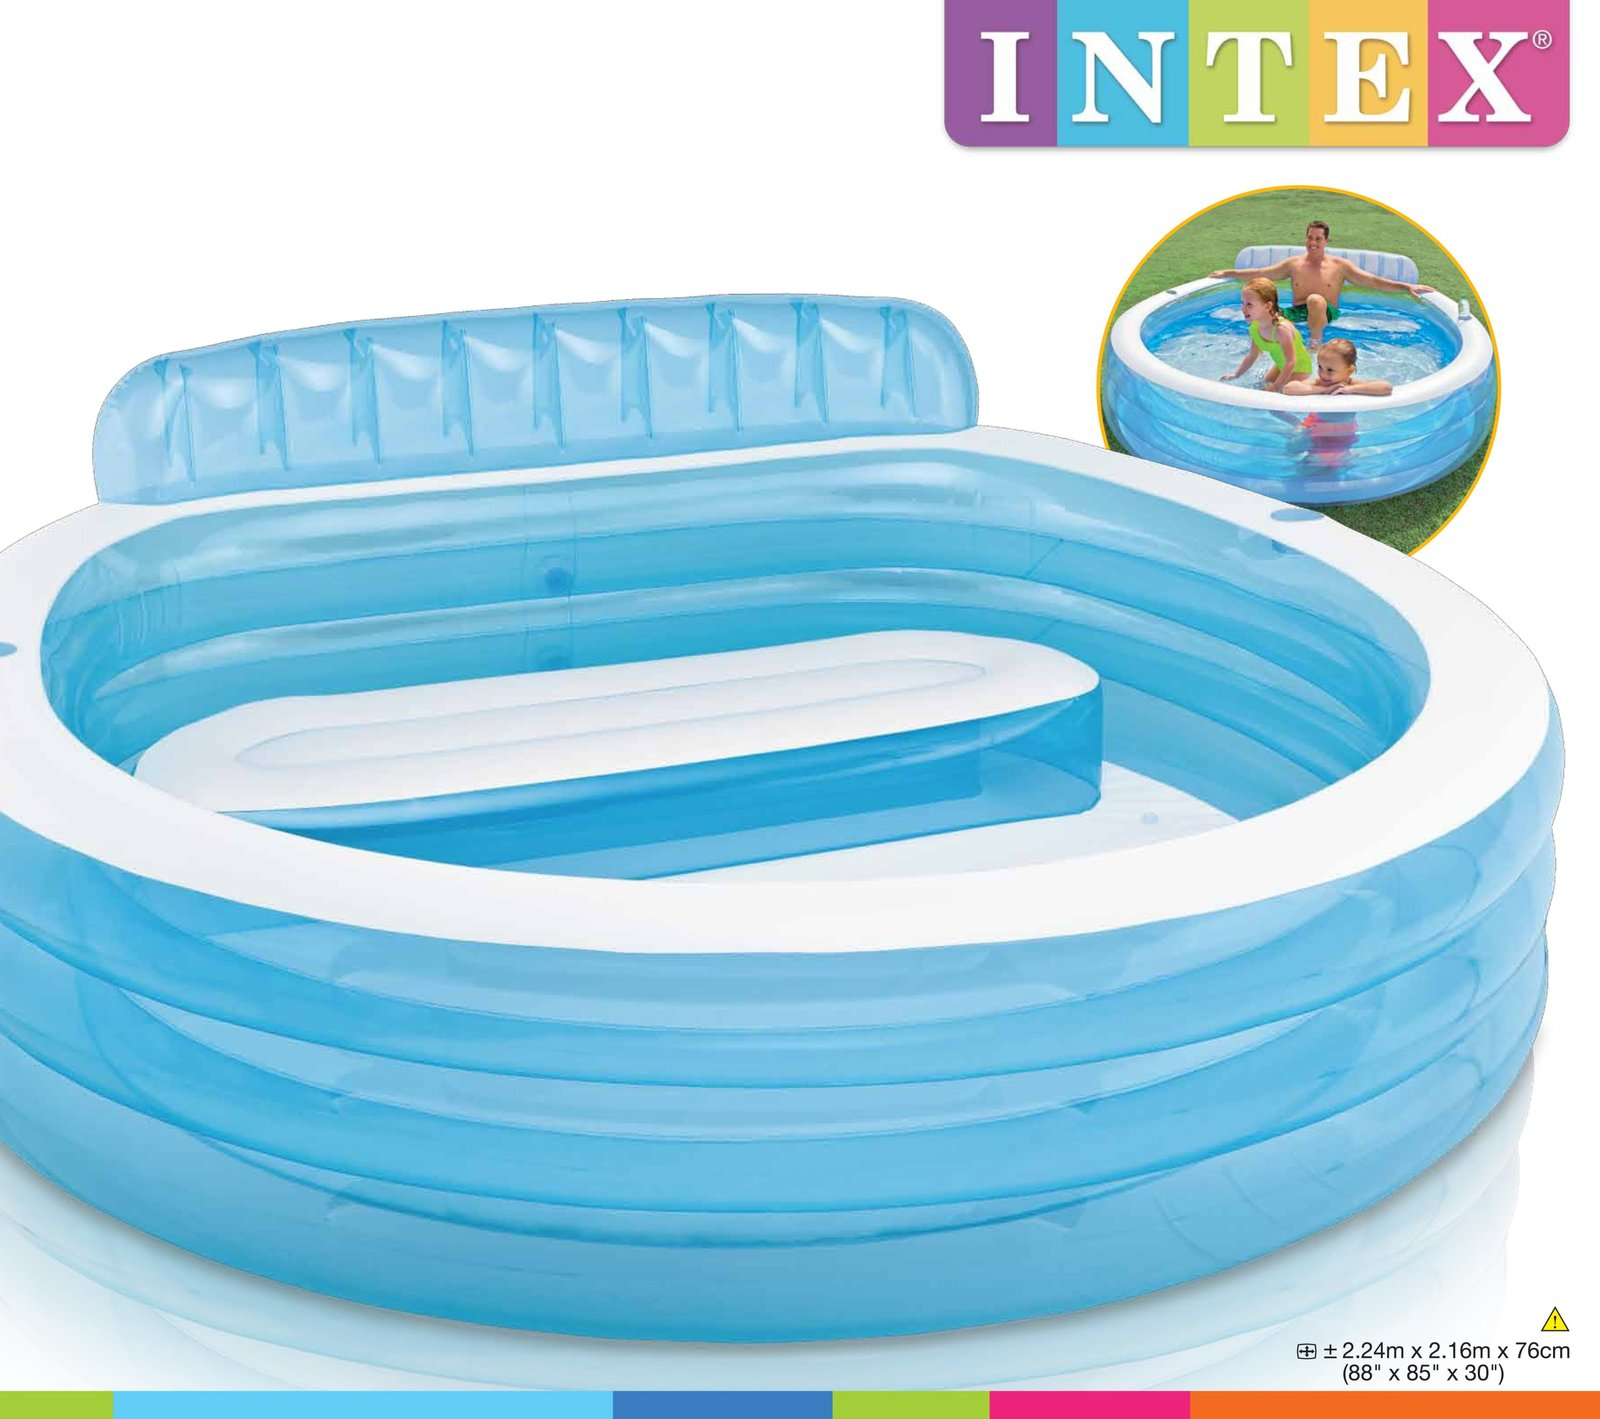 Swim Centre Family Lounge Pool Toy At Mighty Ape Nz